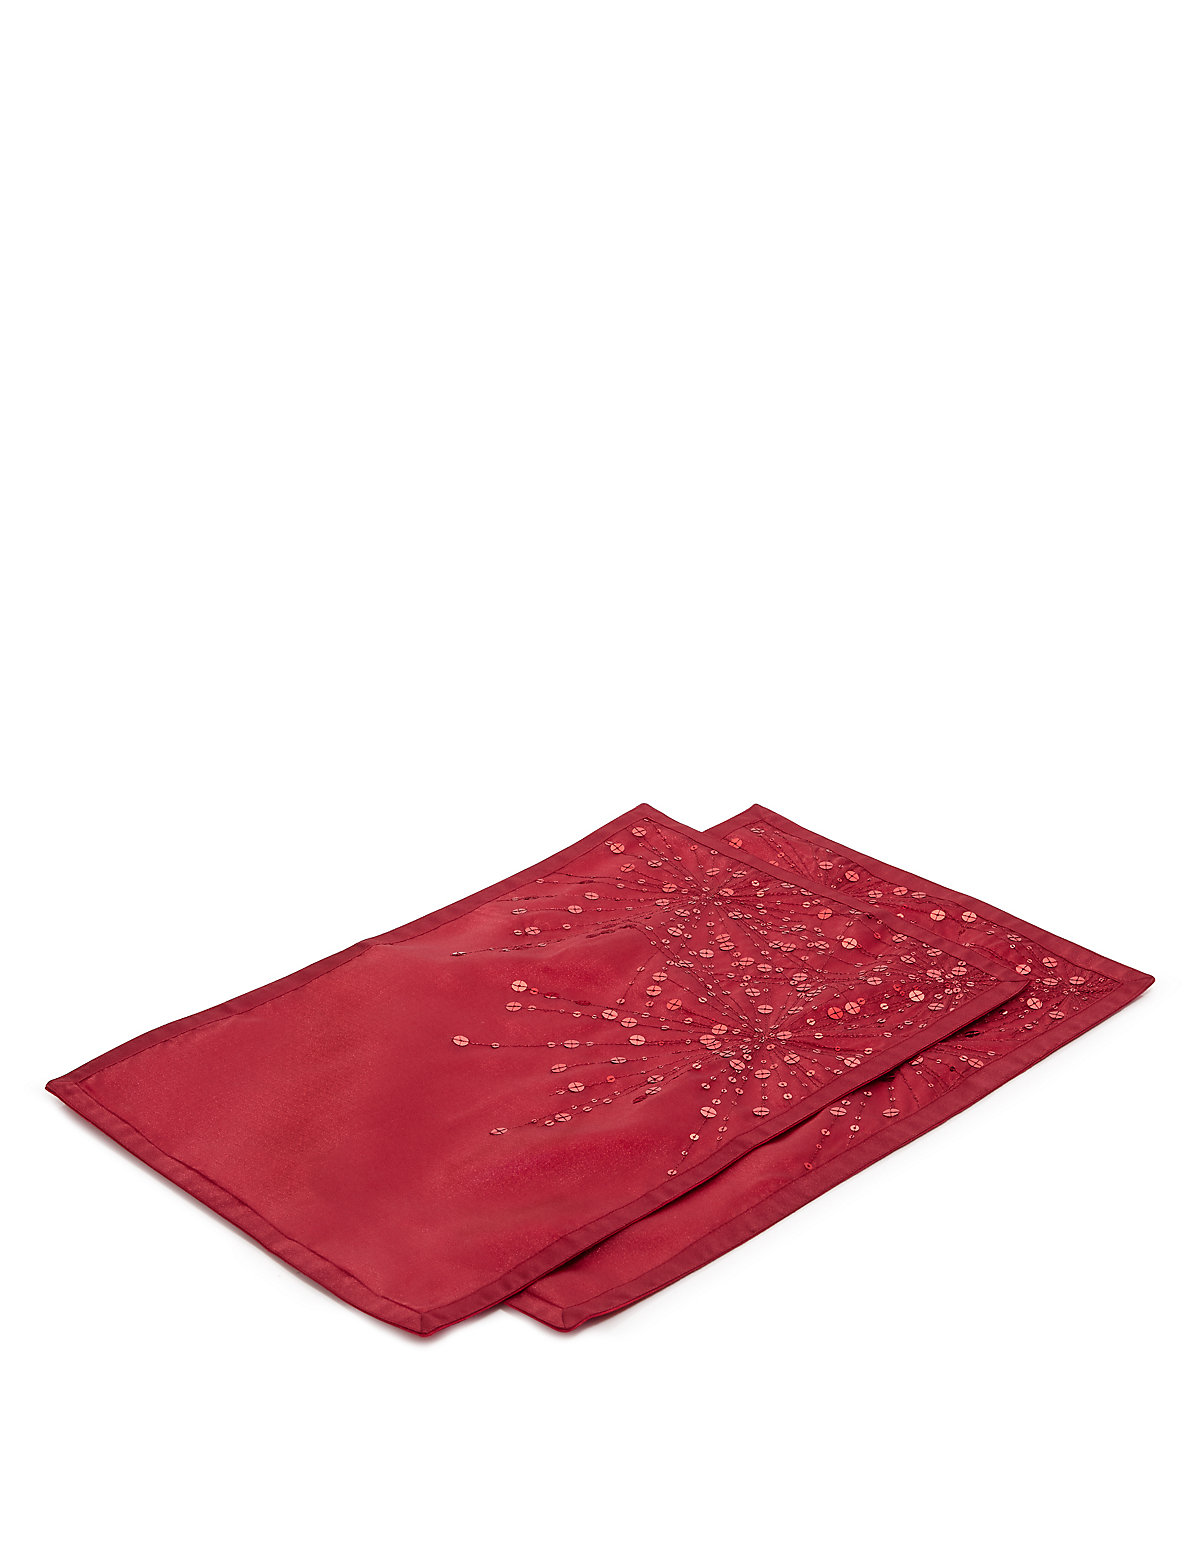 2 Sequin Embellished Embroidered Placemats Red